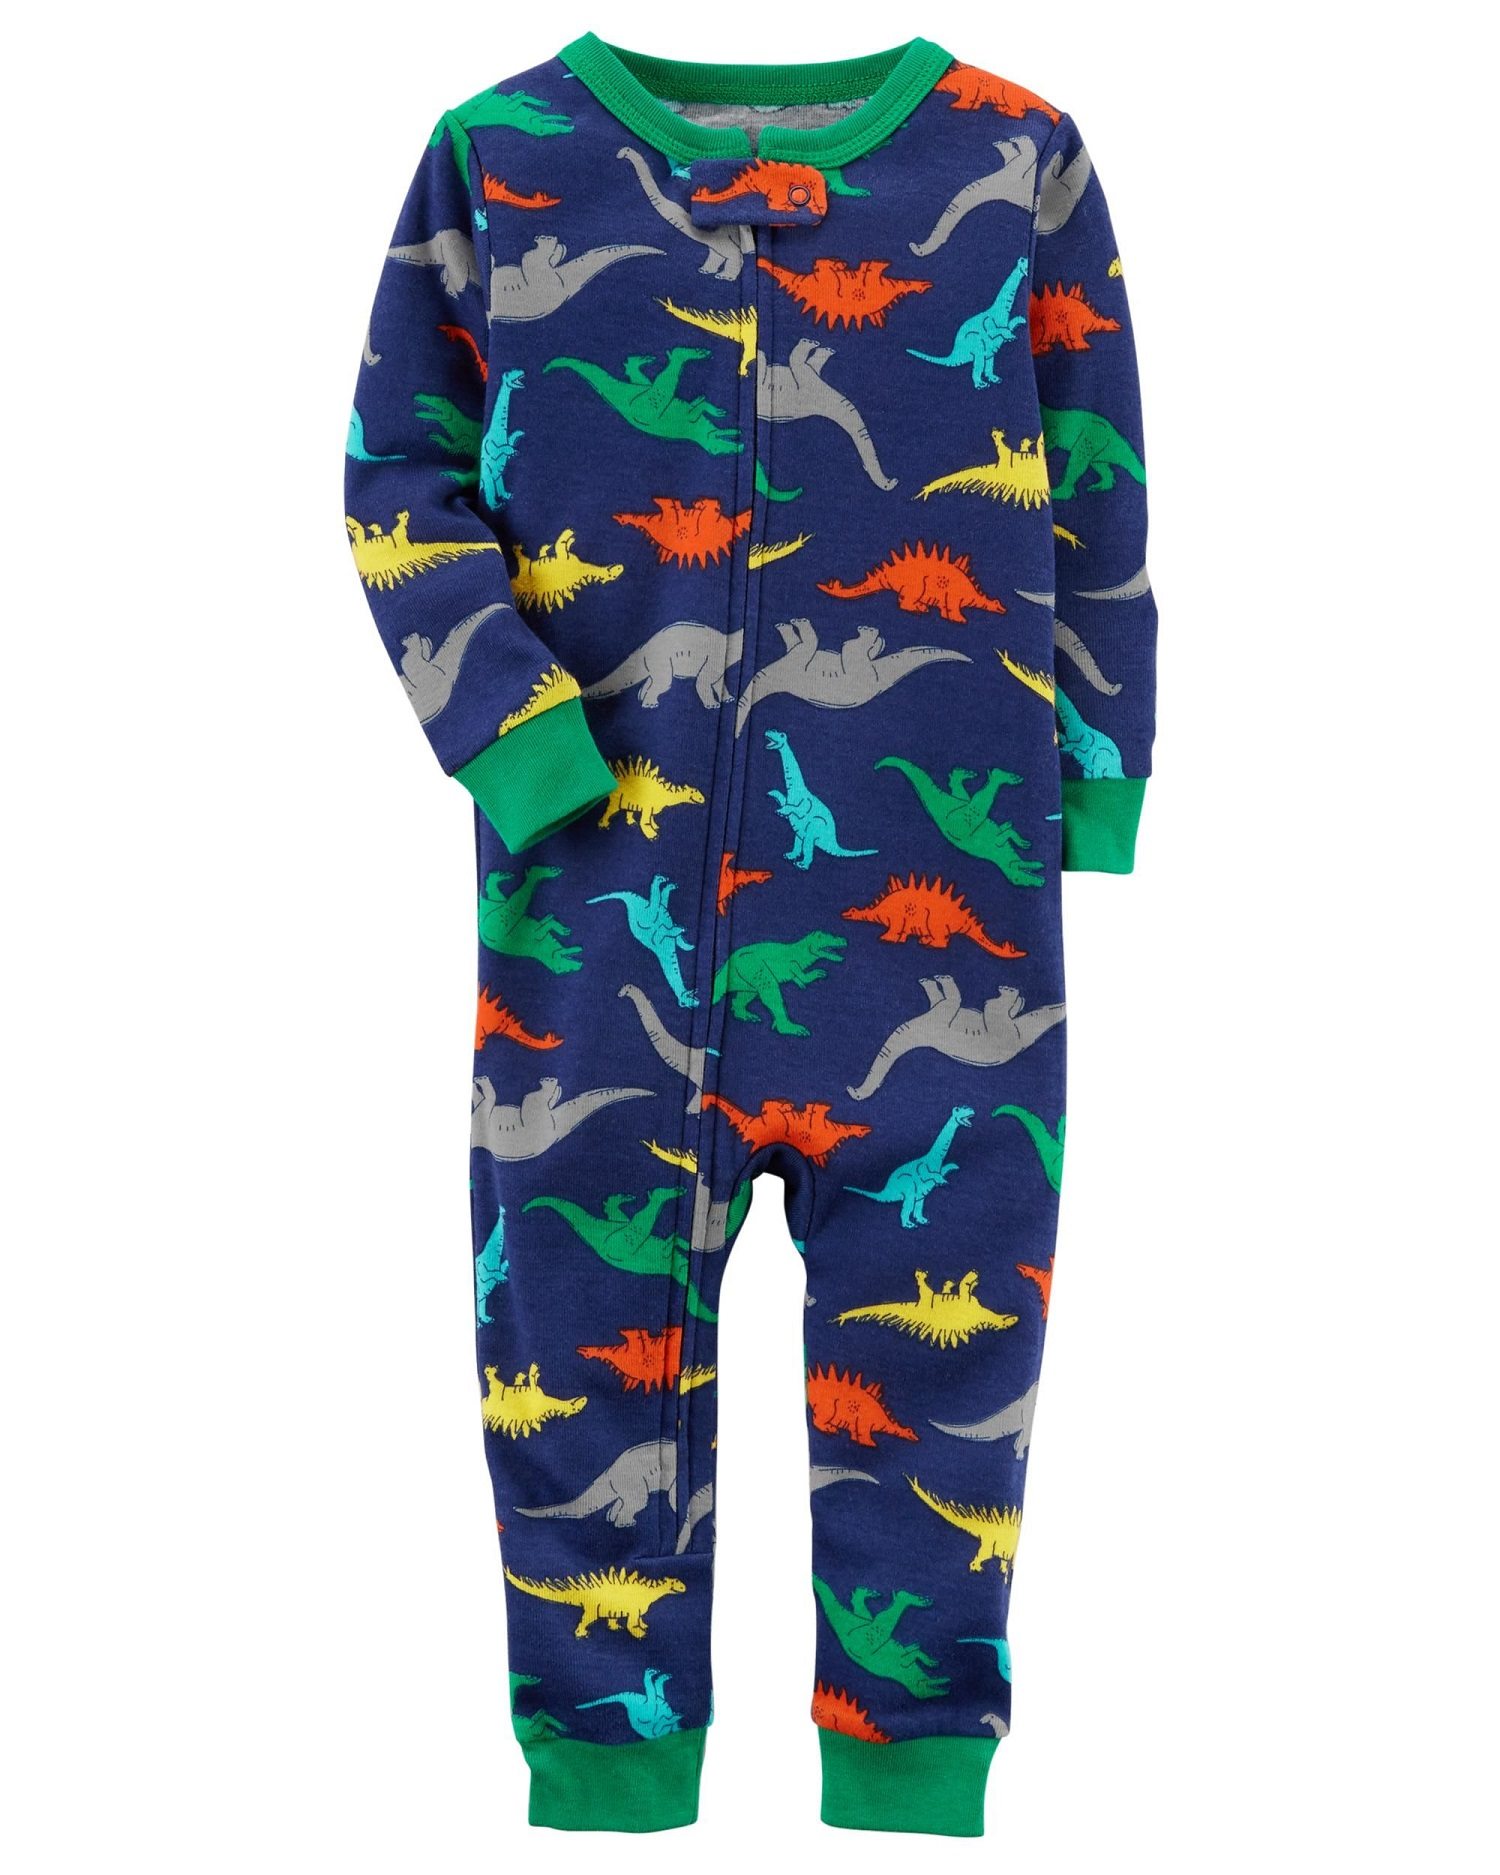 7de3f21bb Carter s Baby Boys  1-Piece Snug Fit Cotton Footless PJs